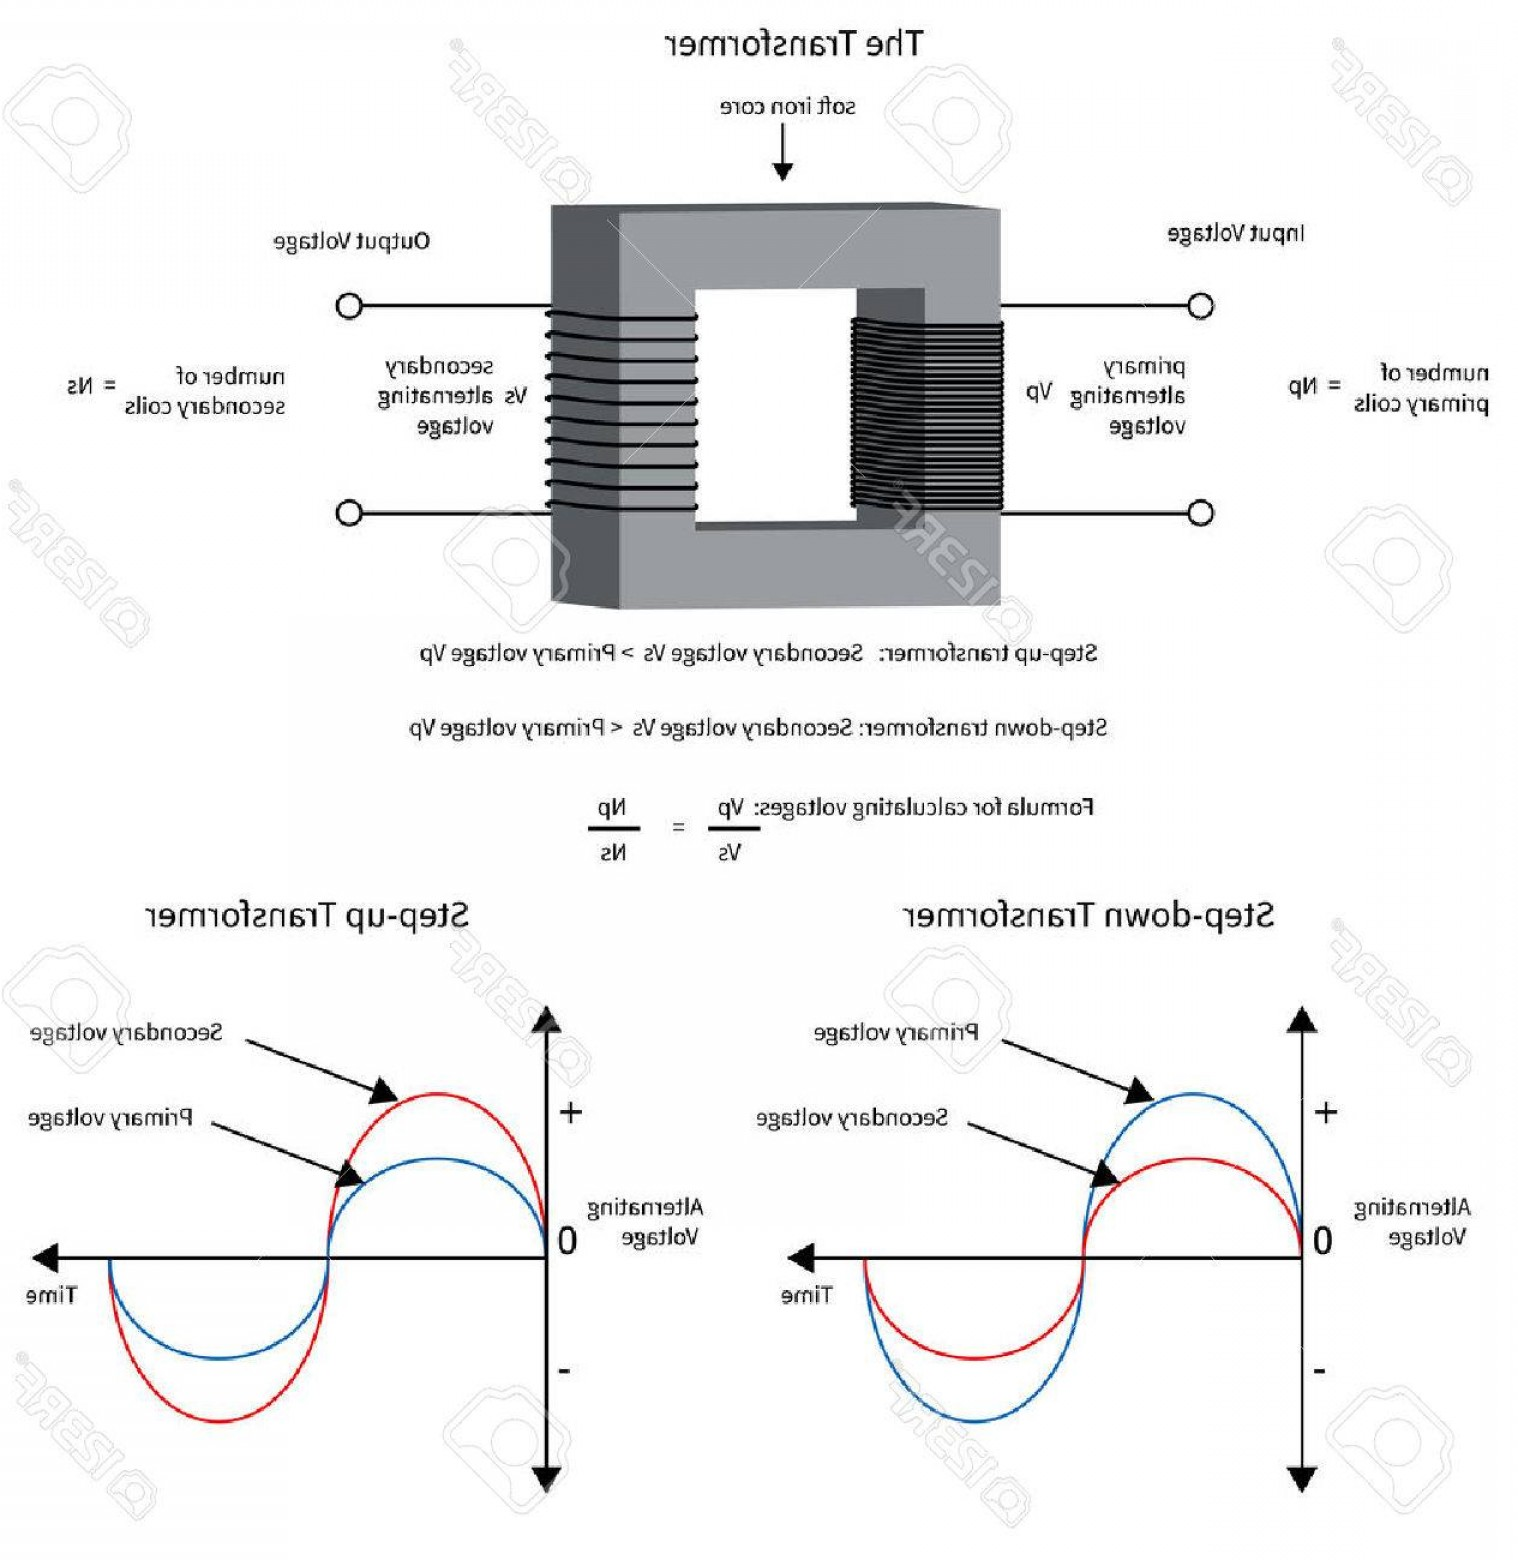 Transformer Vector Diagrams: Photostock Vector Diagram To Show How A Electrical Transformer Changes Voltage And Current